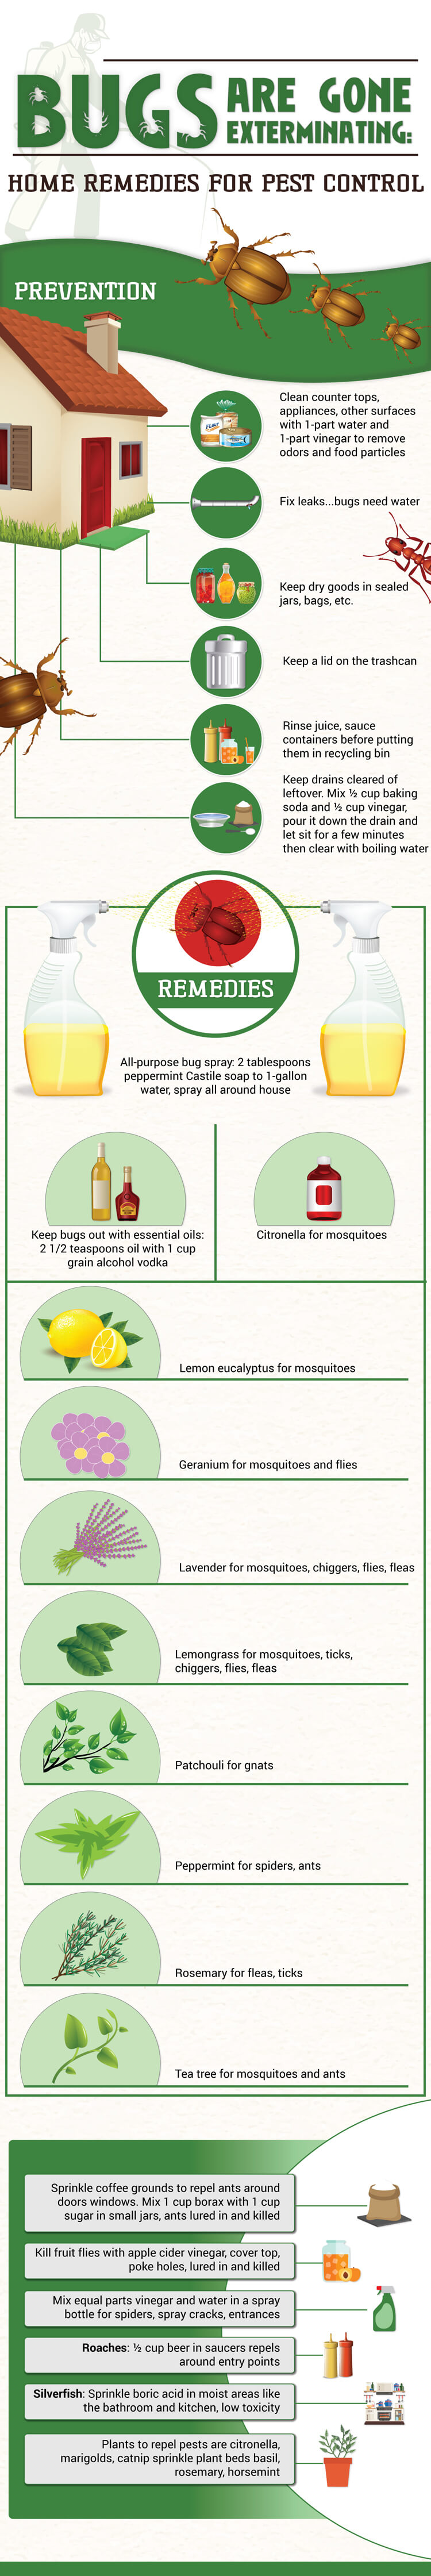 23-Do-It-Yourself-Pest-Control-Tips-Infographic-plaza